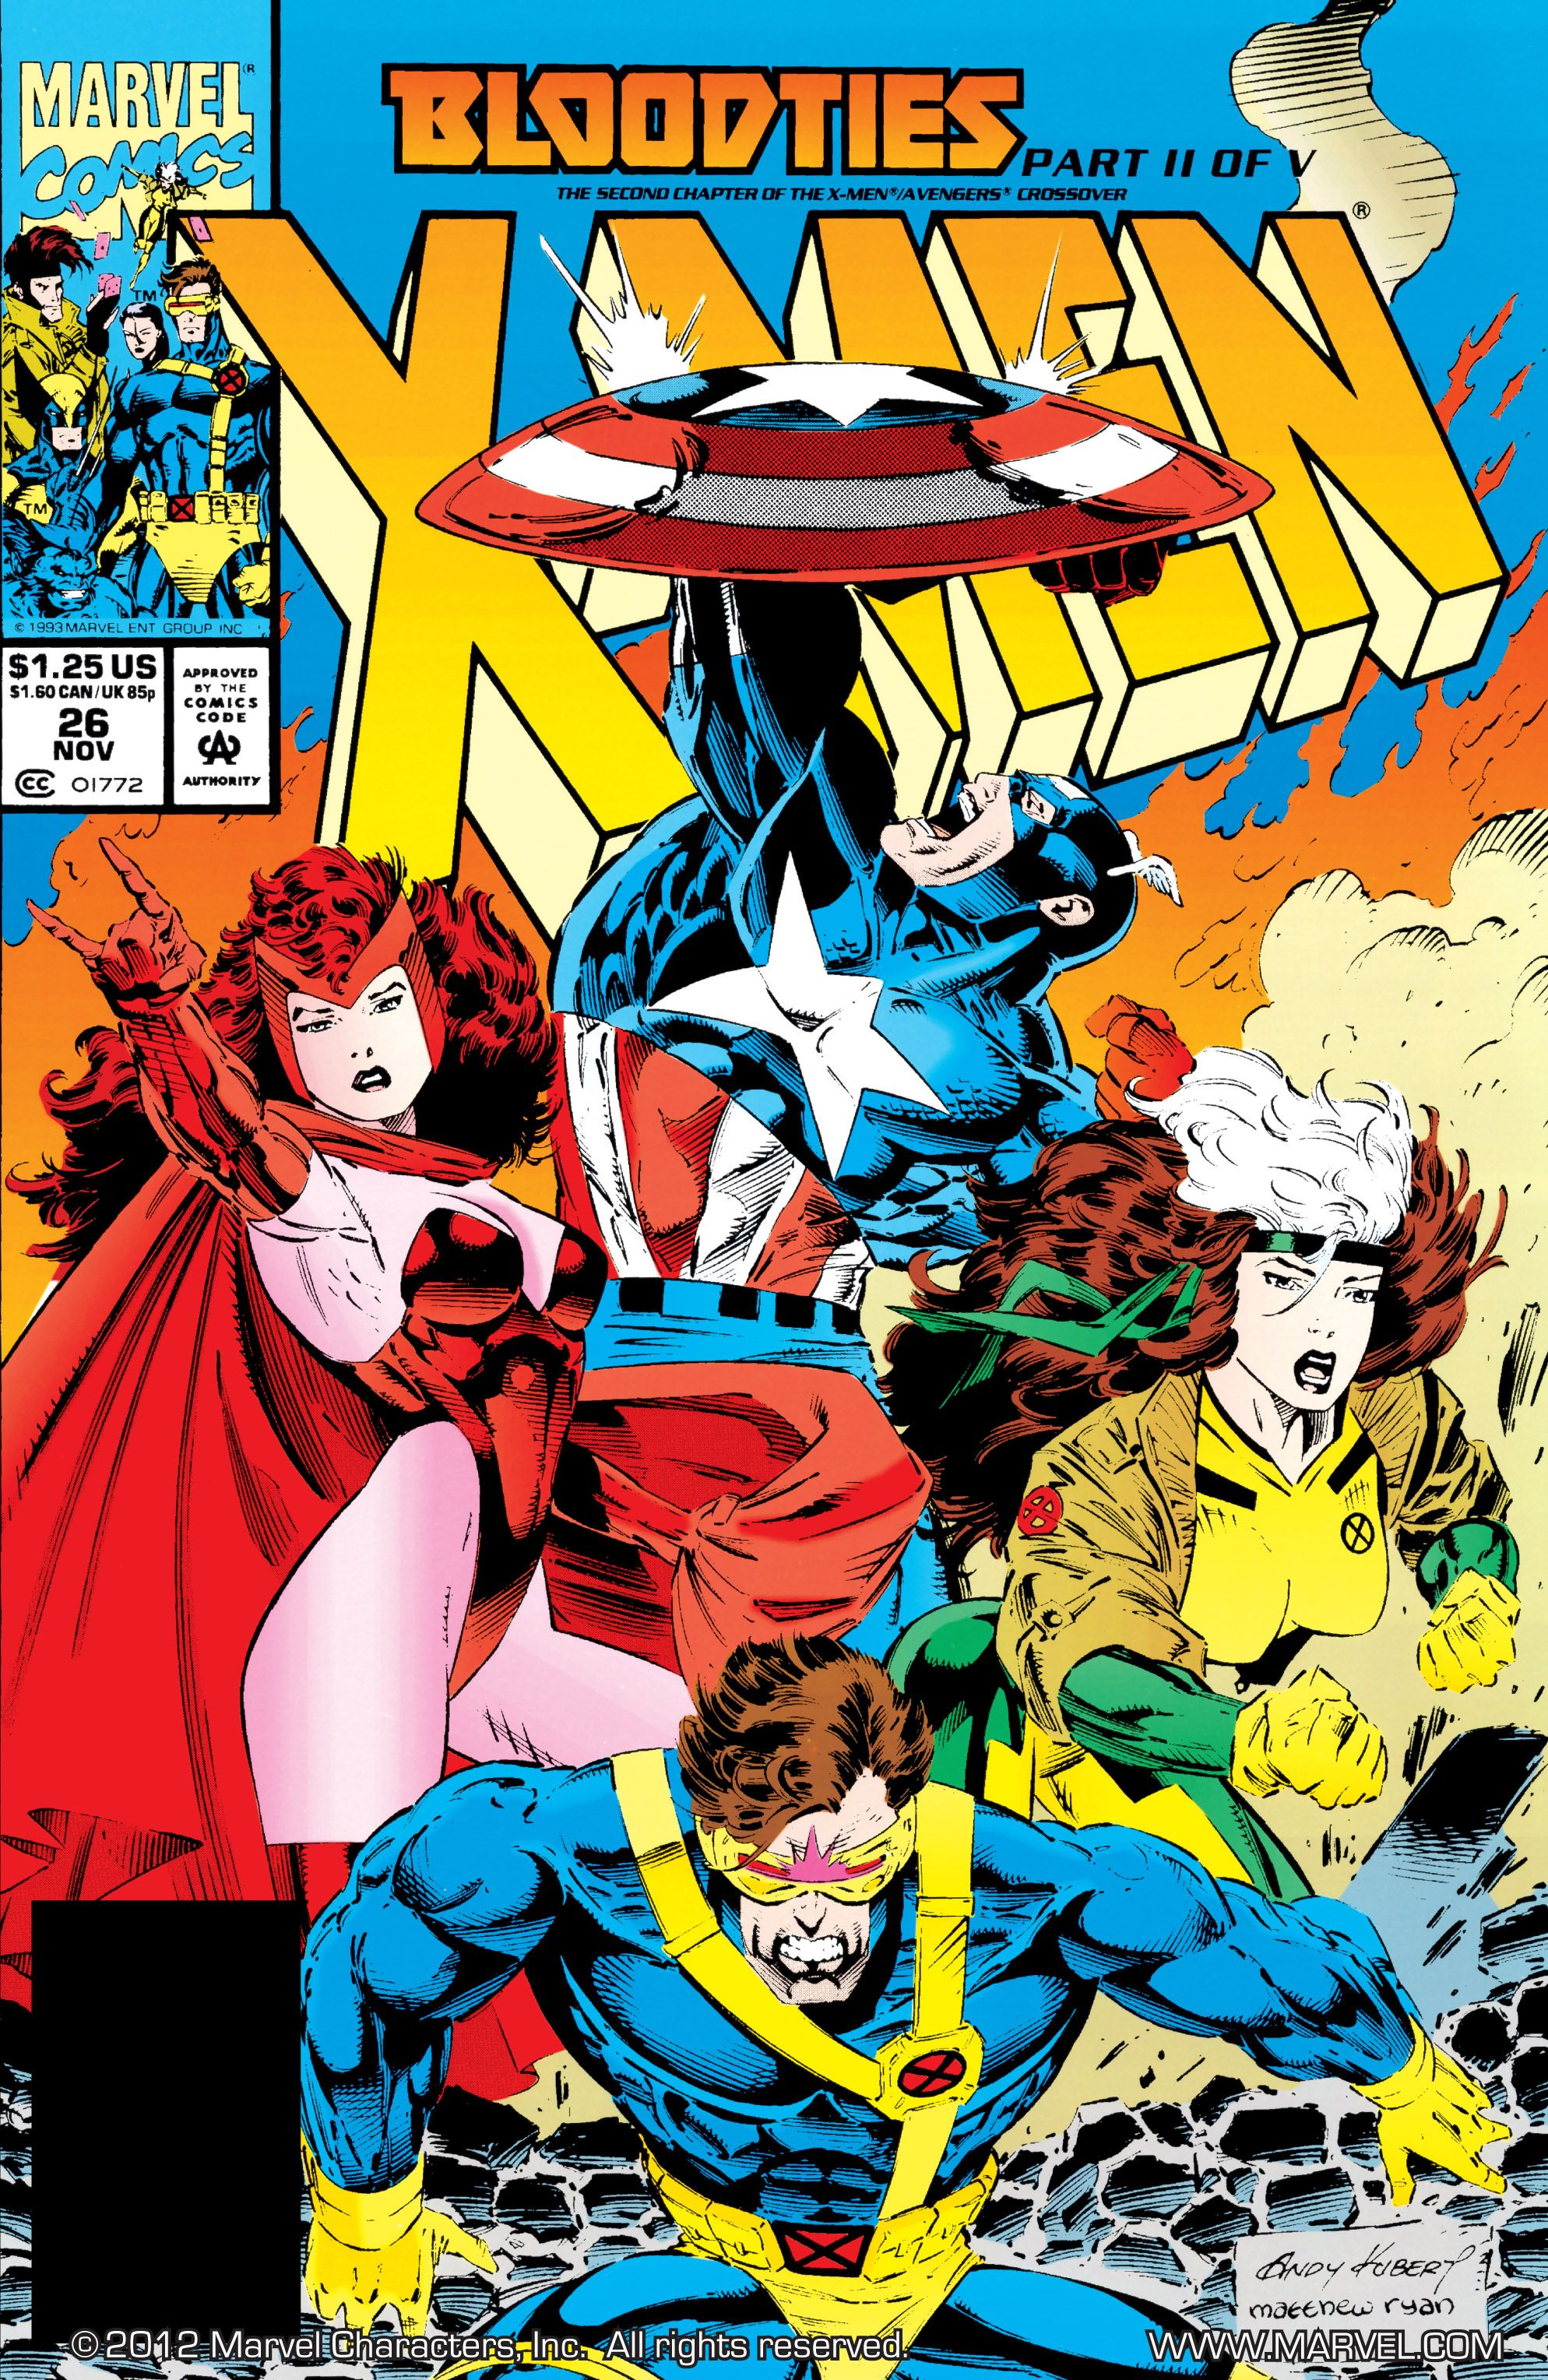 X Men 1991 Issue 26 Read X Men 1991 Issue 26 Comic Online In High Quality Marvel Comics Superheroes Comics Marvel Comics Covers